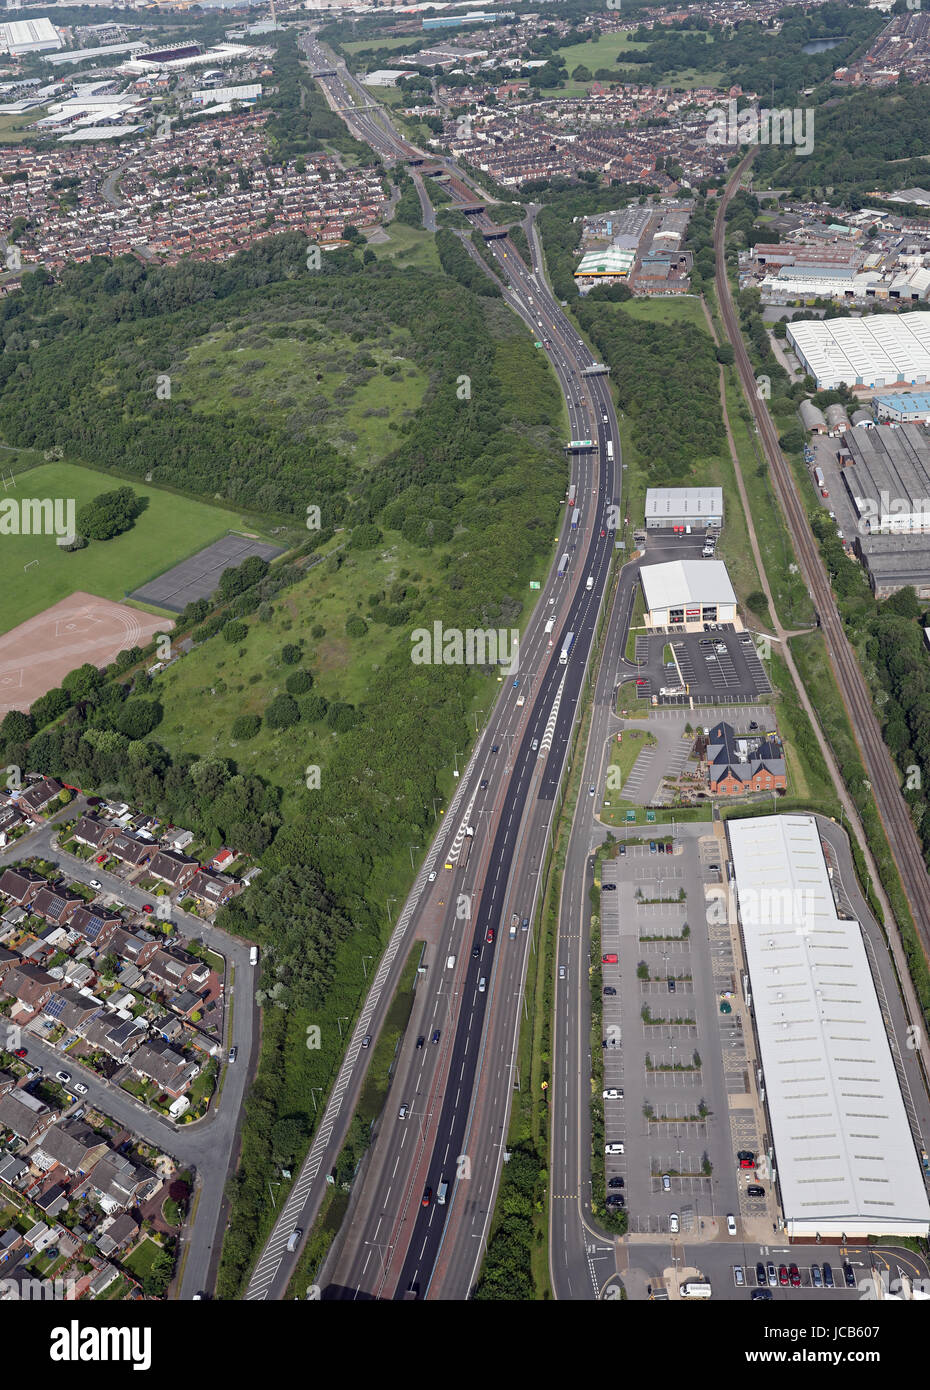 aerial view of the A50 dual carriageway at Stoke on Trent, Staffs, UK - Stock Image